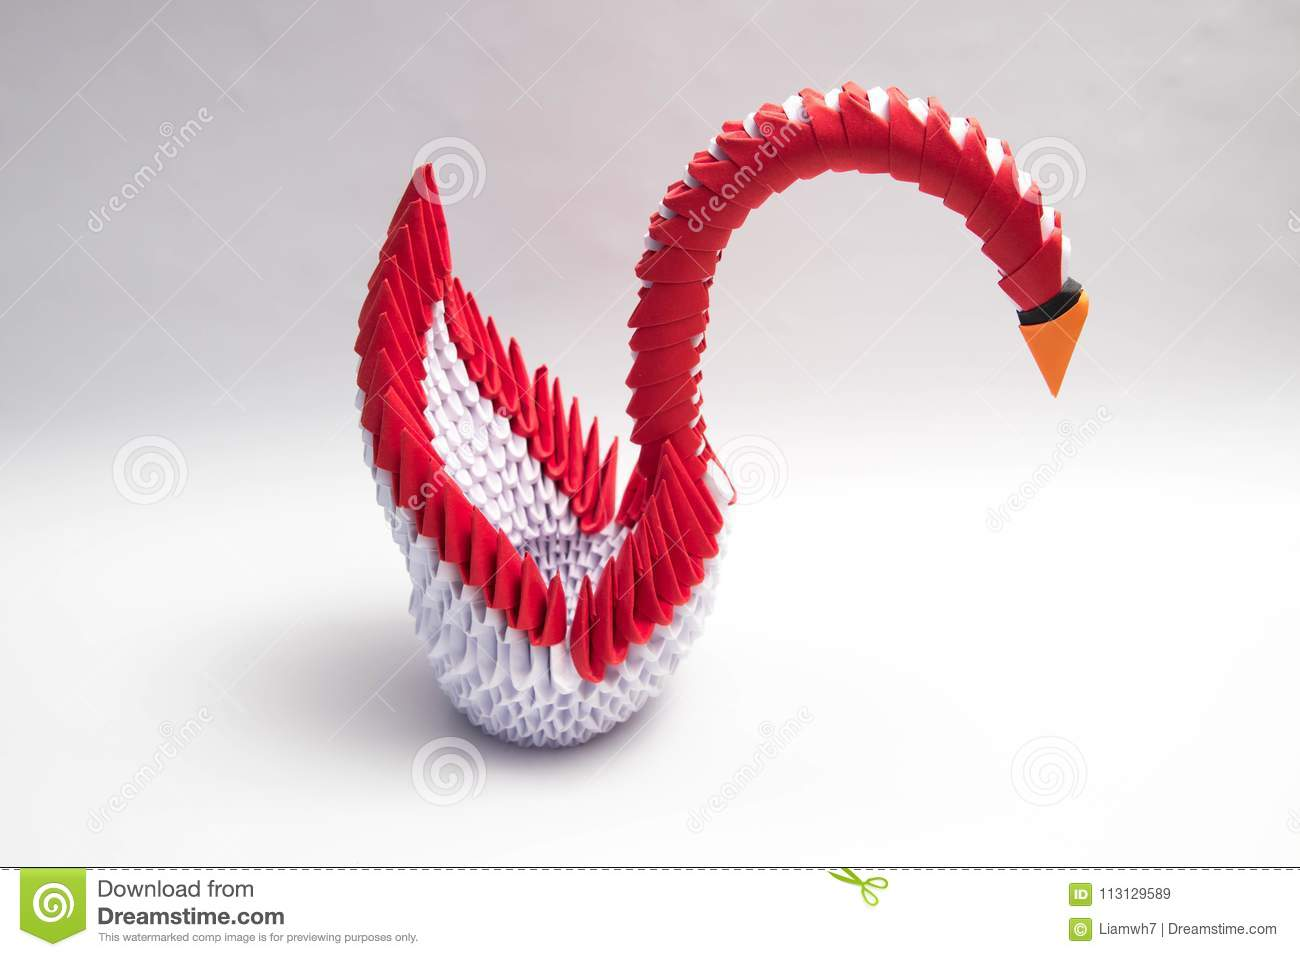 Download 3d Origami Swan Bird Red Stock Image Of